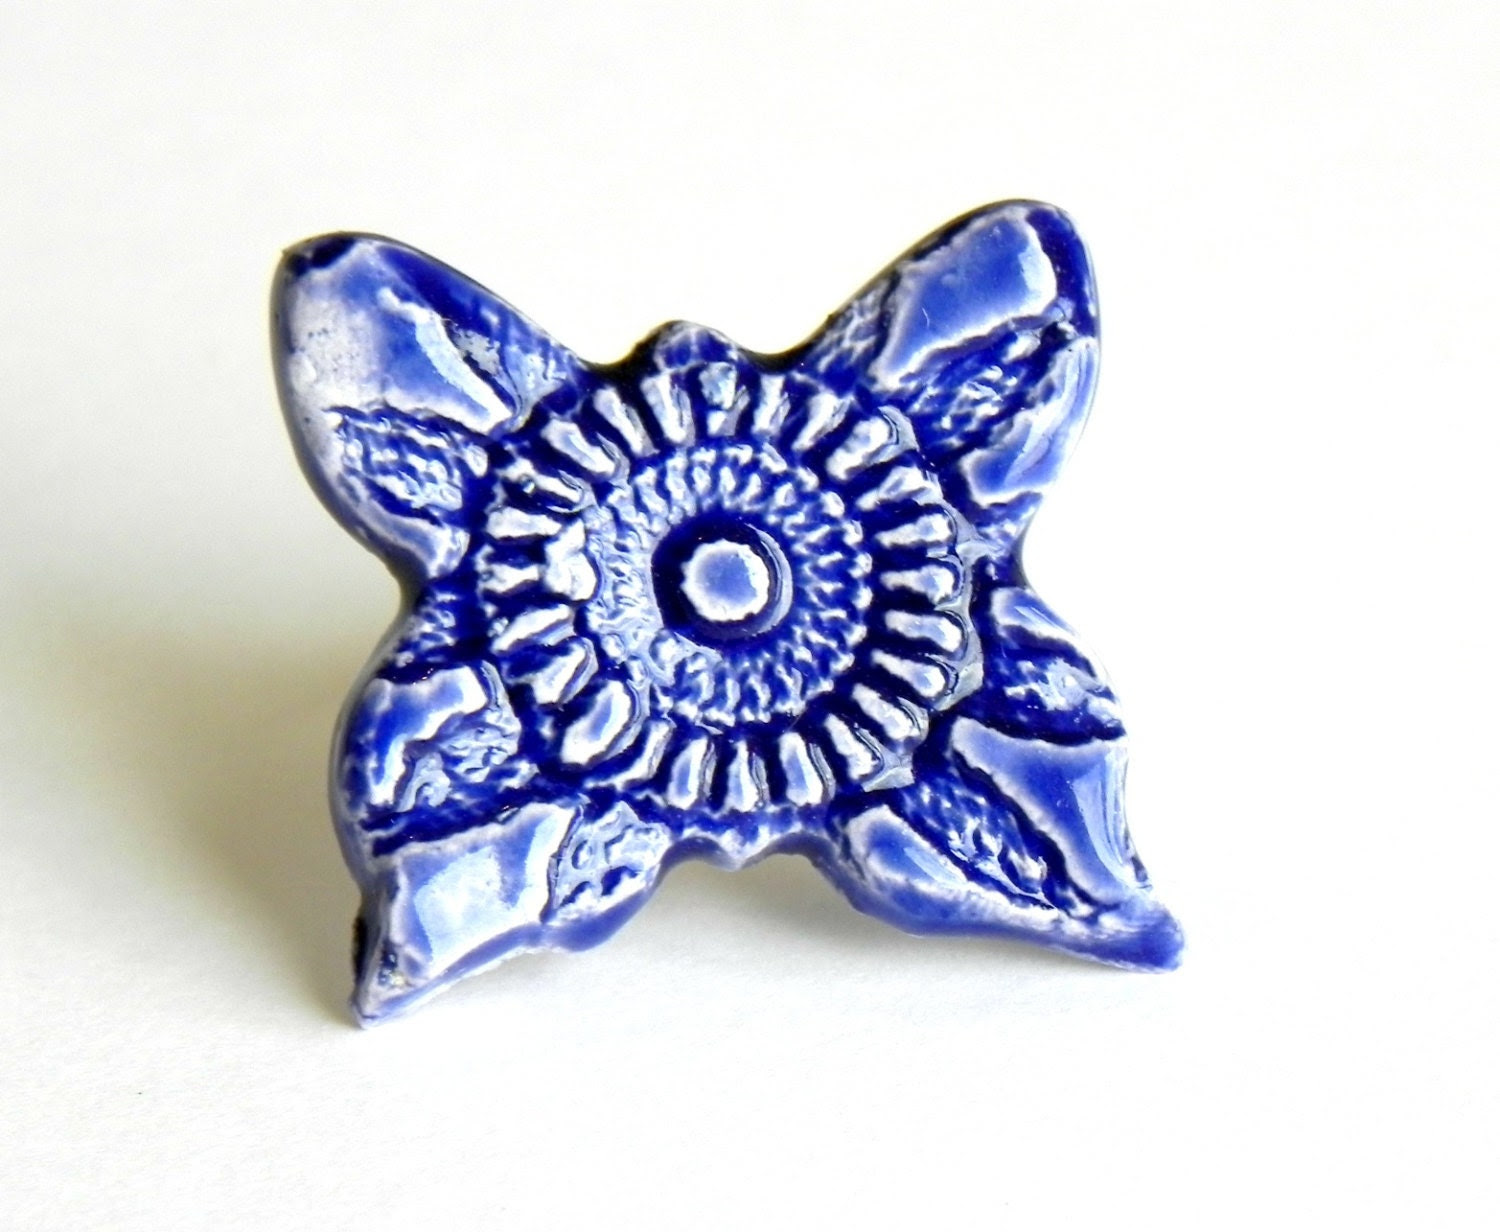 Lace Ceramic Cocktail Ring Oversized Royal Blue Butterfly Pottery Adjustable Silver Ring - Ceraminic